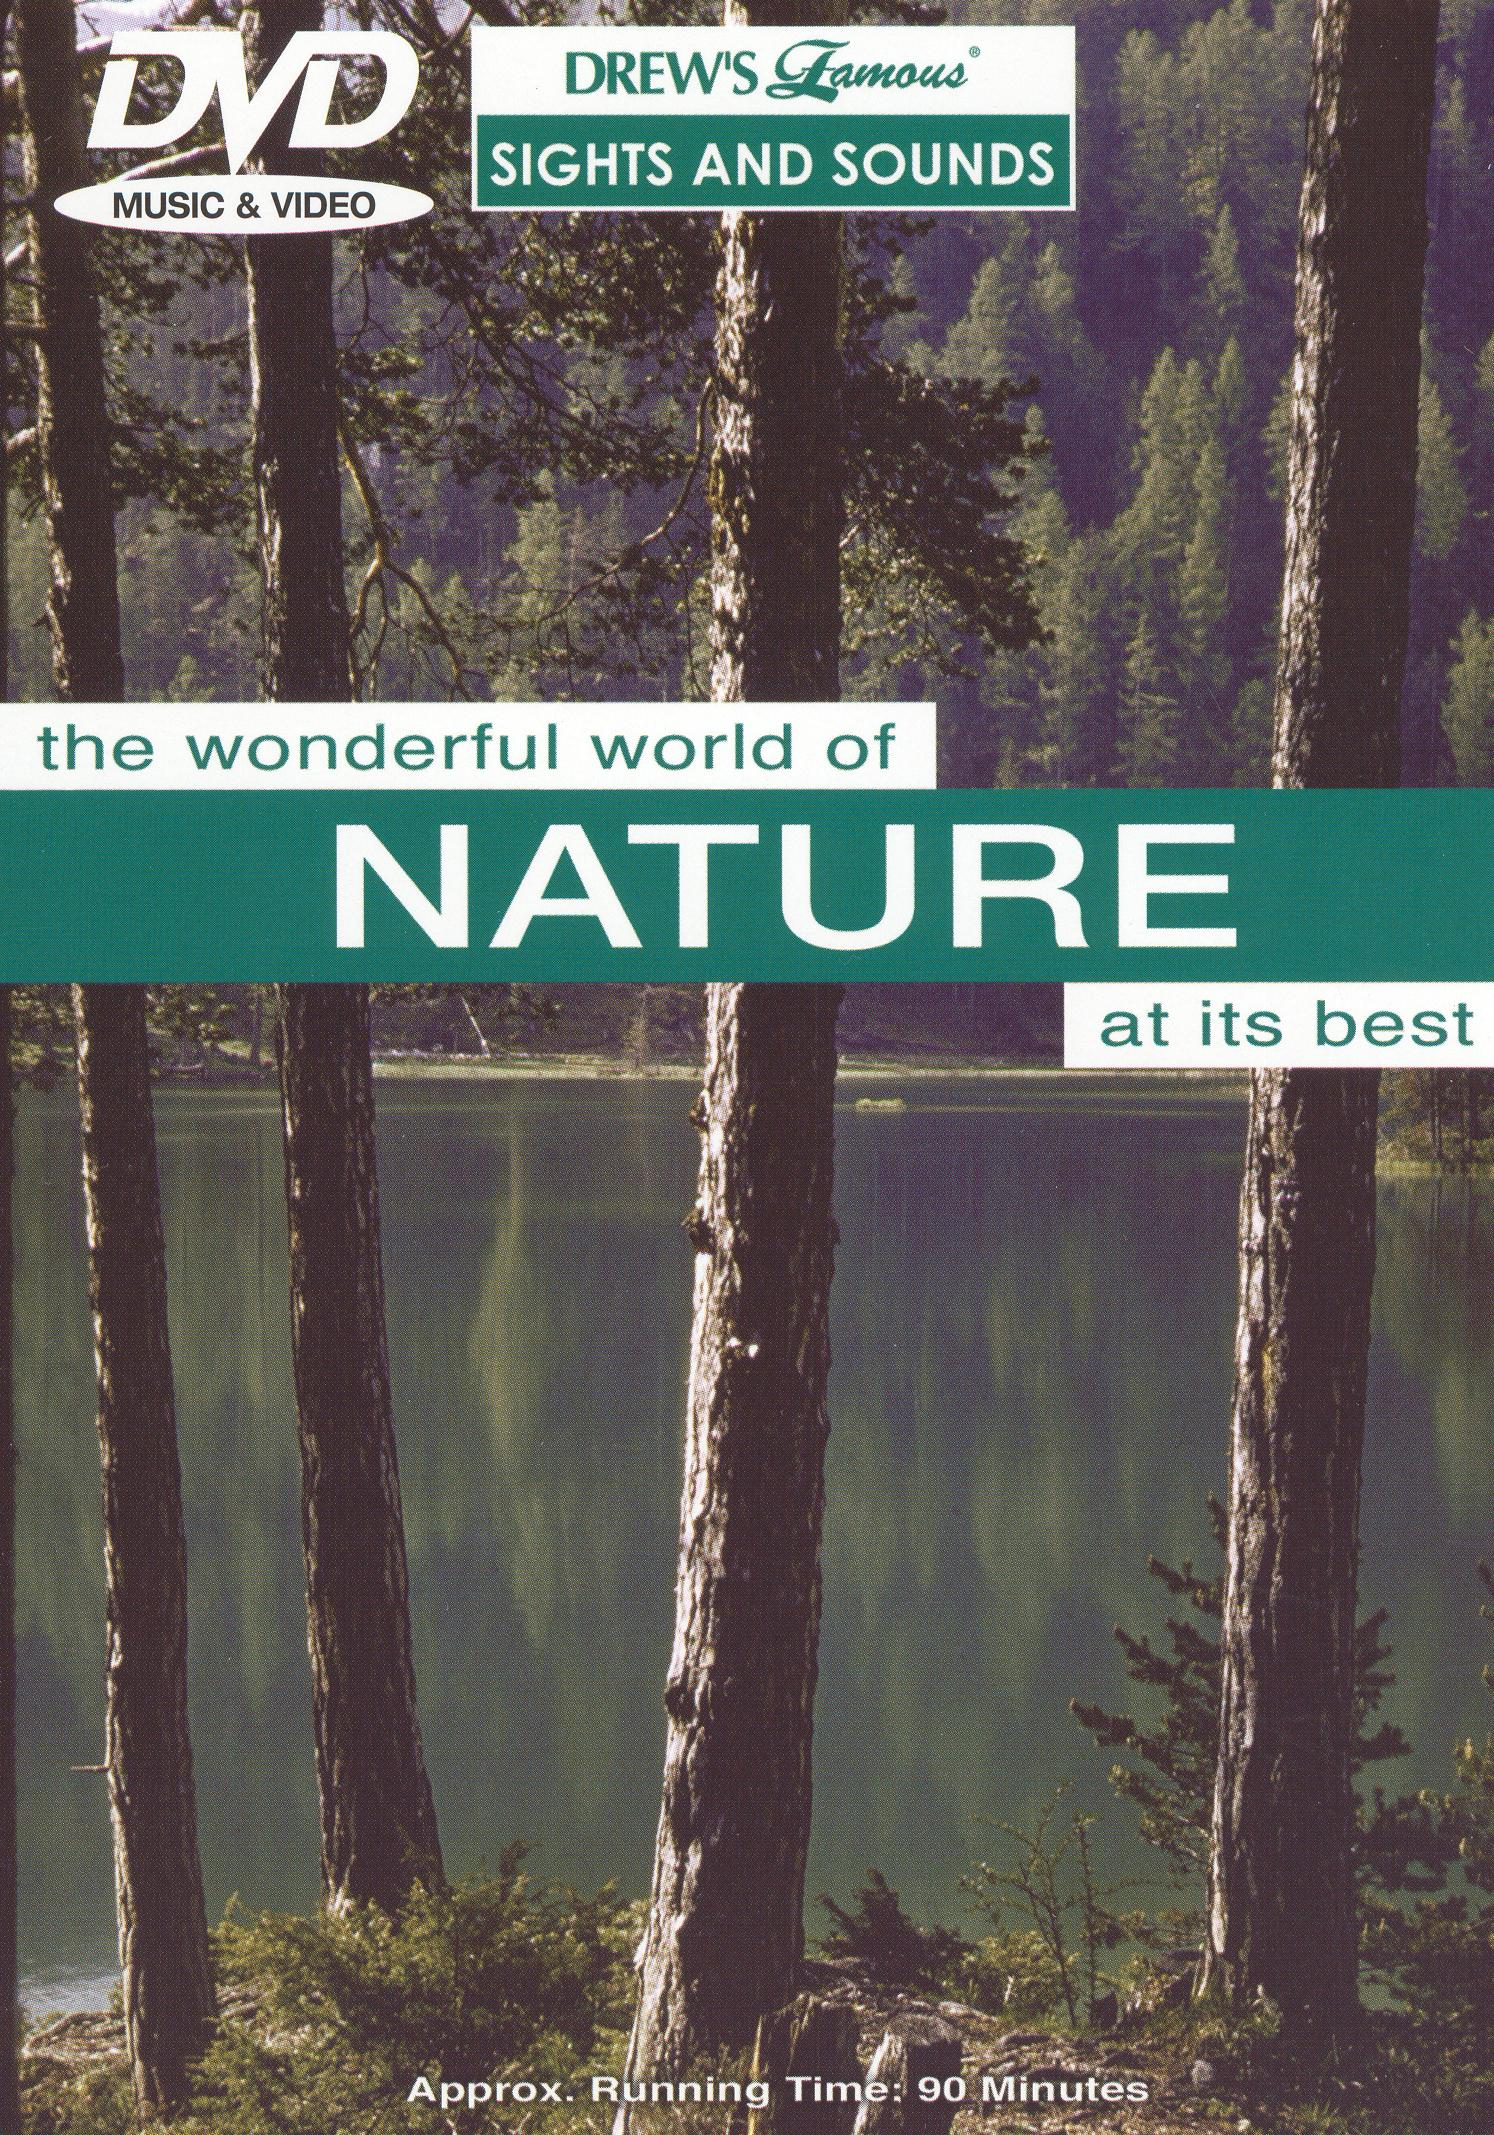 Drew's Famous Sights & Sounds: Wonderful World Of Nature